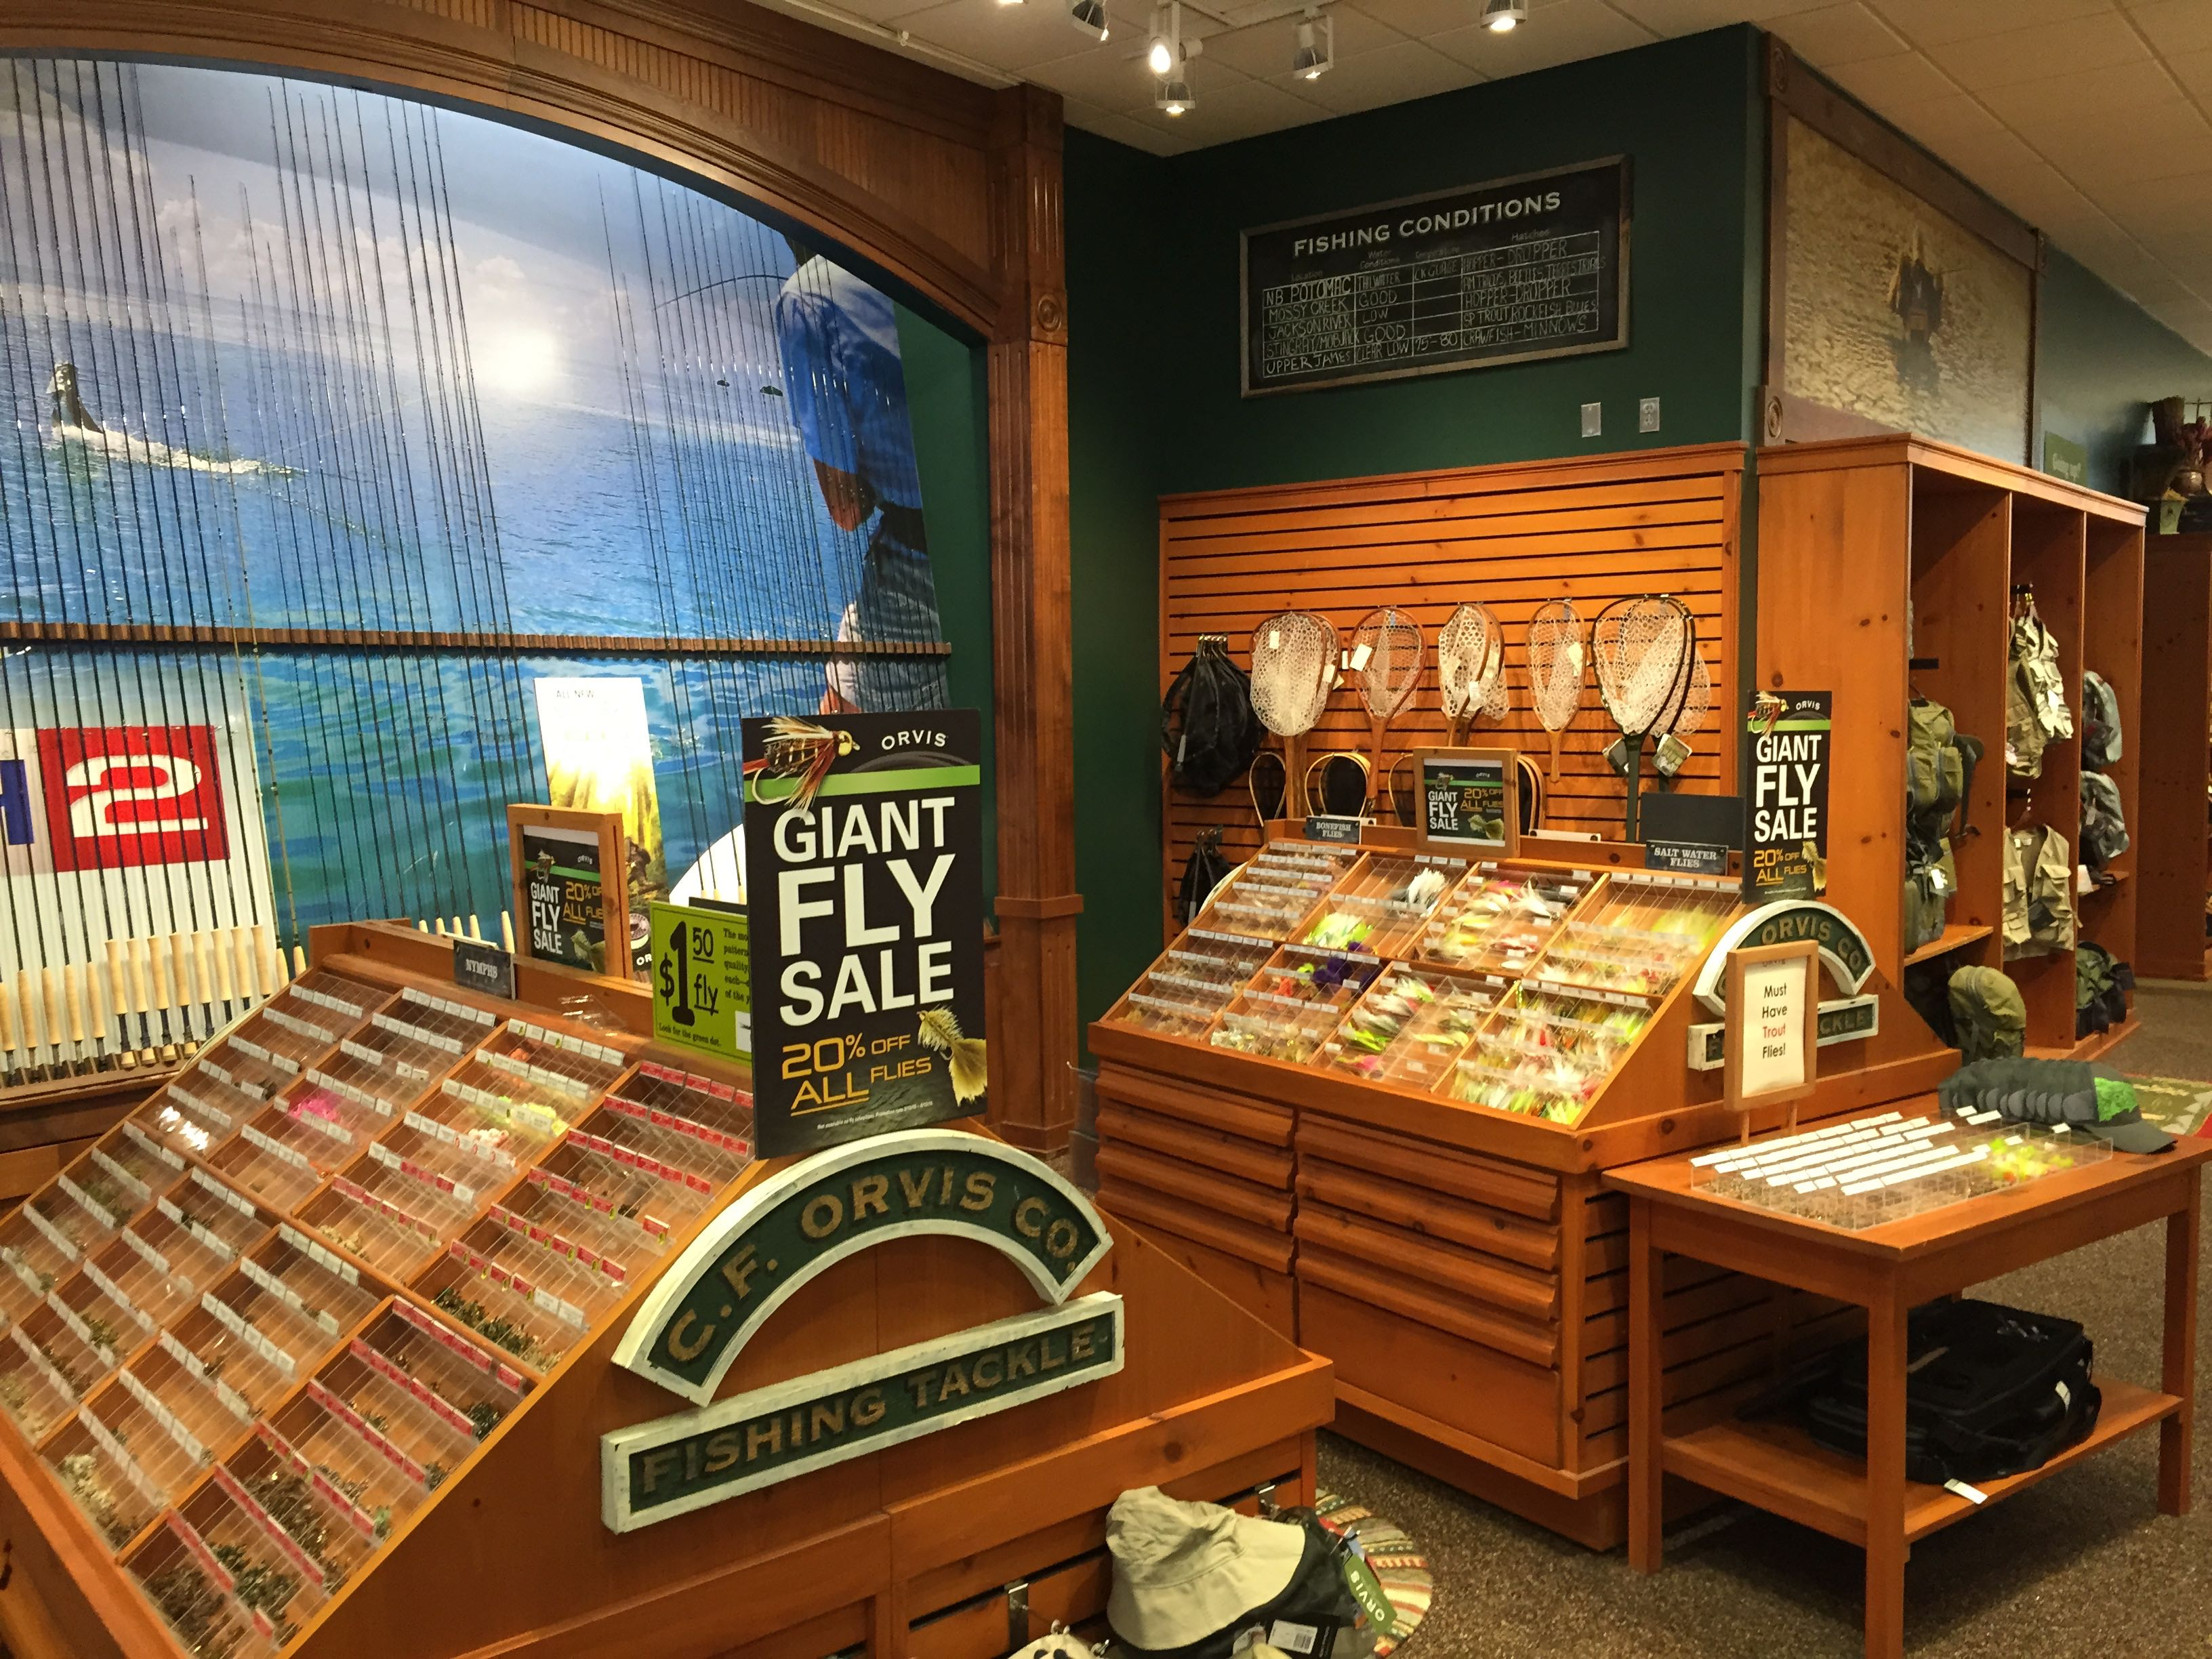 I Thought It Was Very Interesting How Orvis Had Laid Out Their Store. Two  Stories Tall, With A Large Wooden Staircase In The Center, Everything Felt  As ...